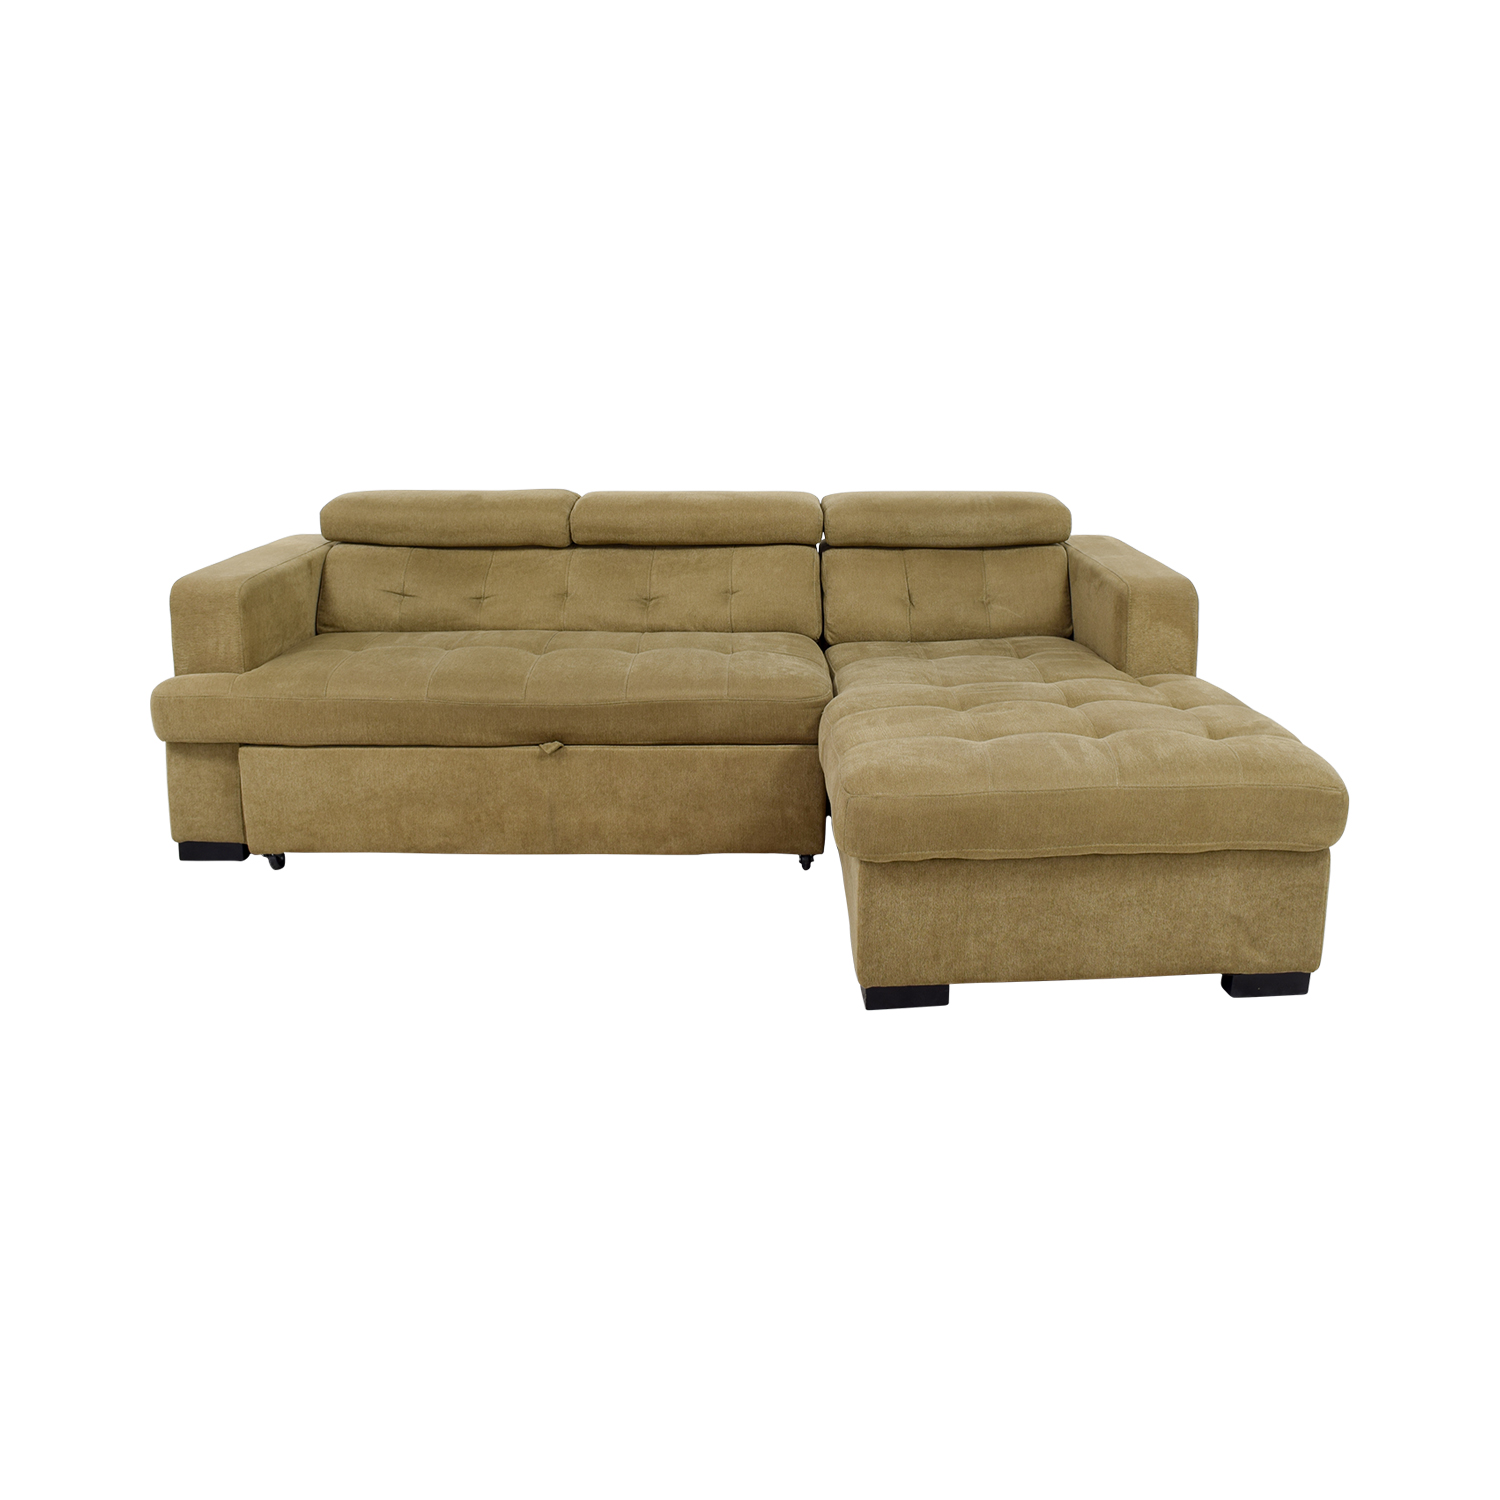 shop Bobs Furniture Bobs Furniture Gold Chaise Sectional Sleeper Sofa online